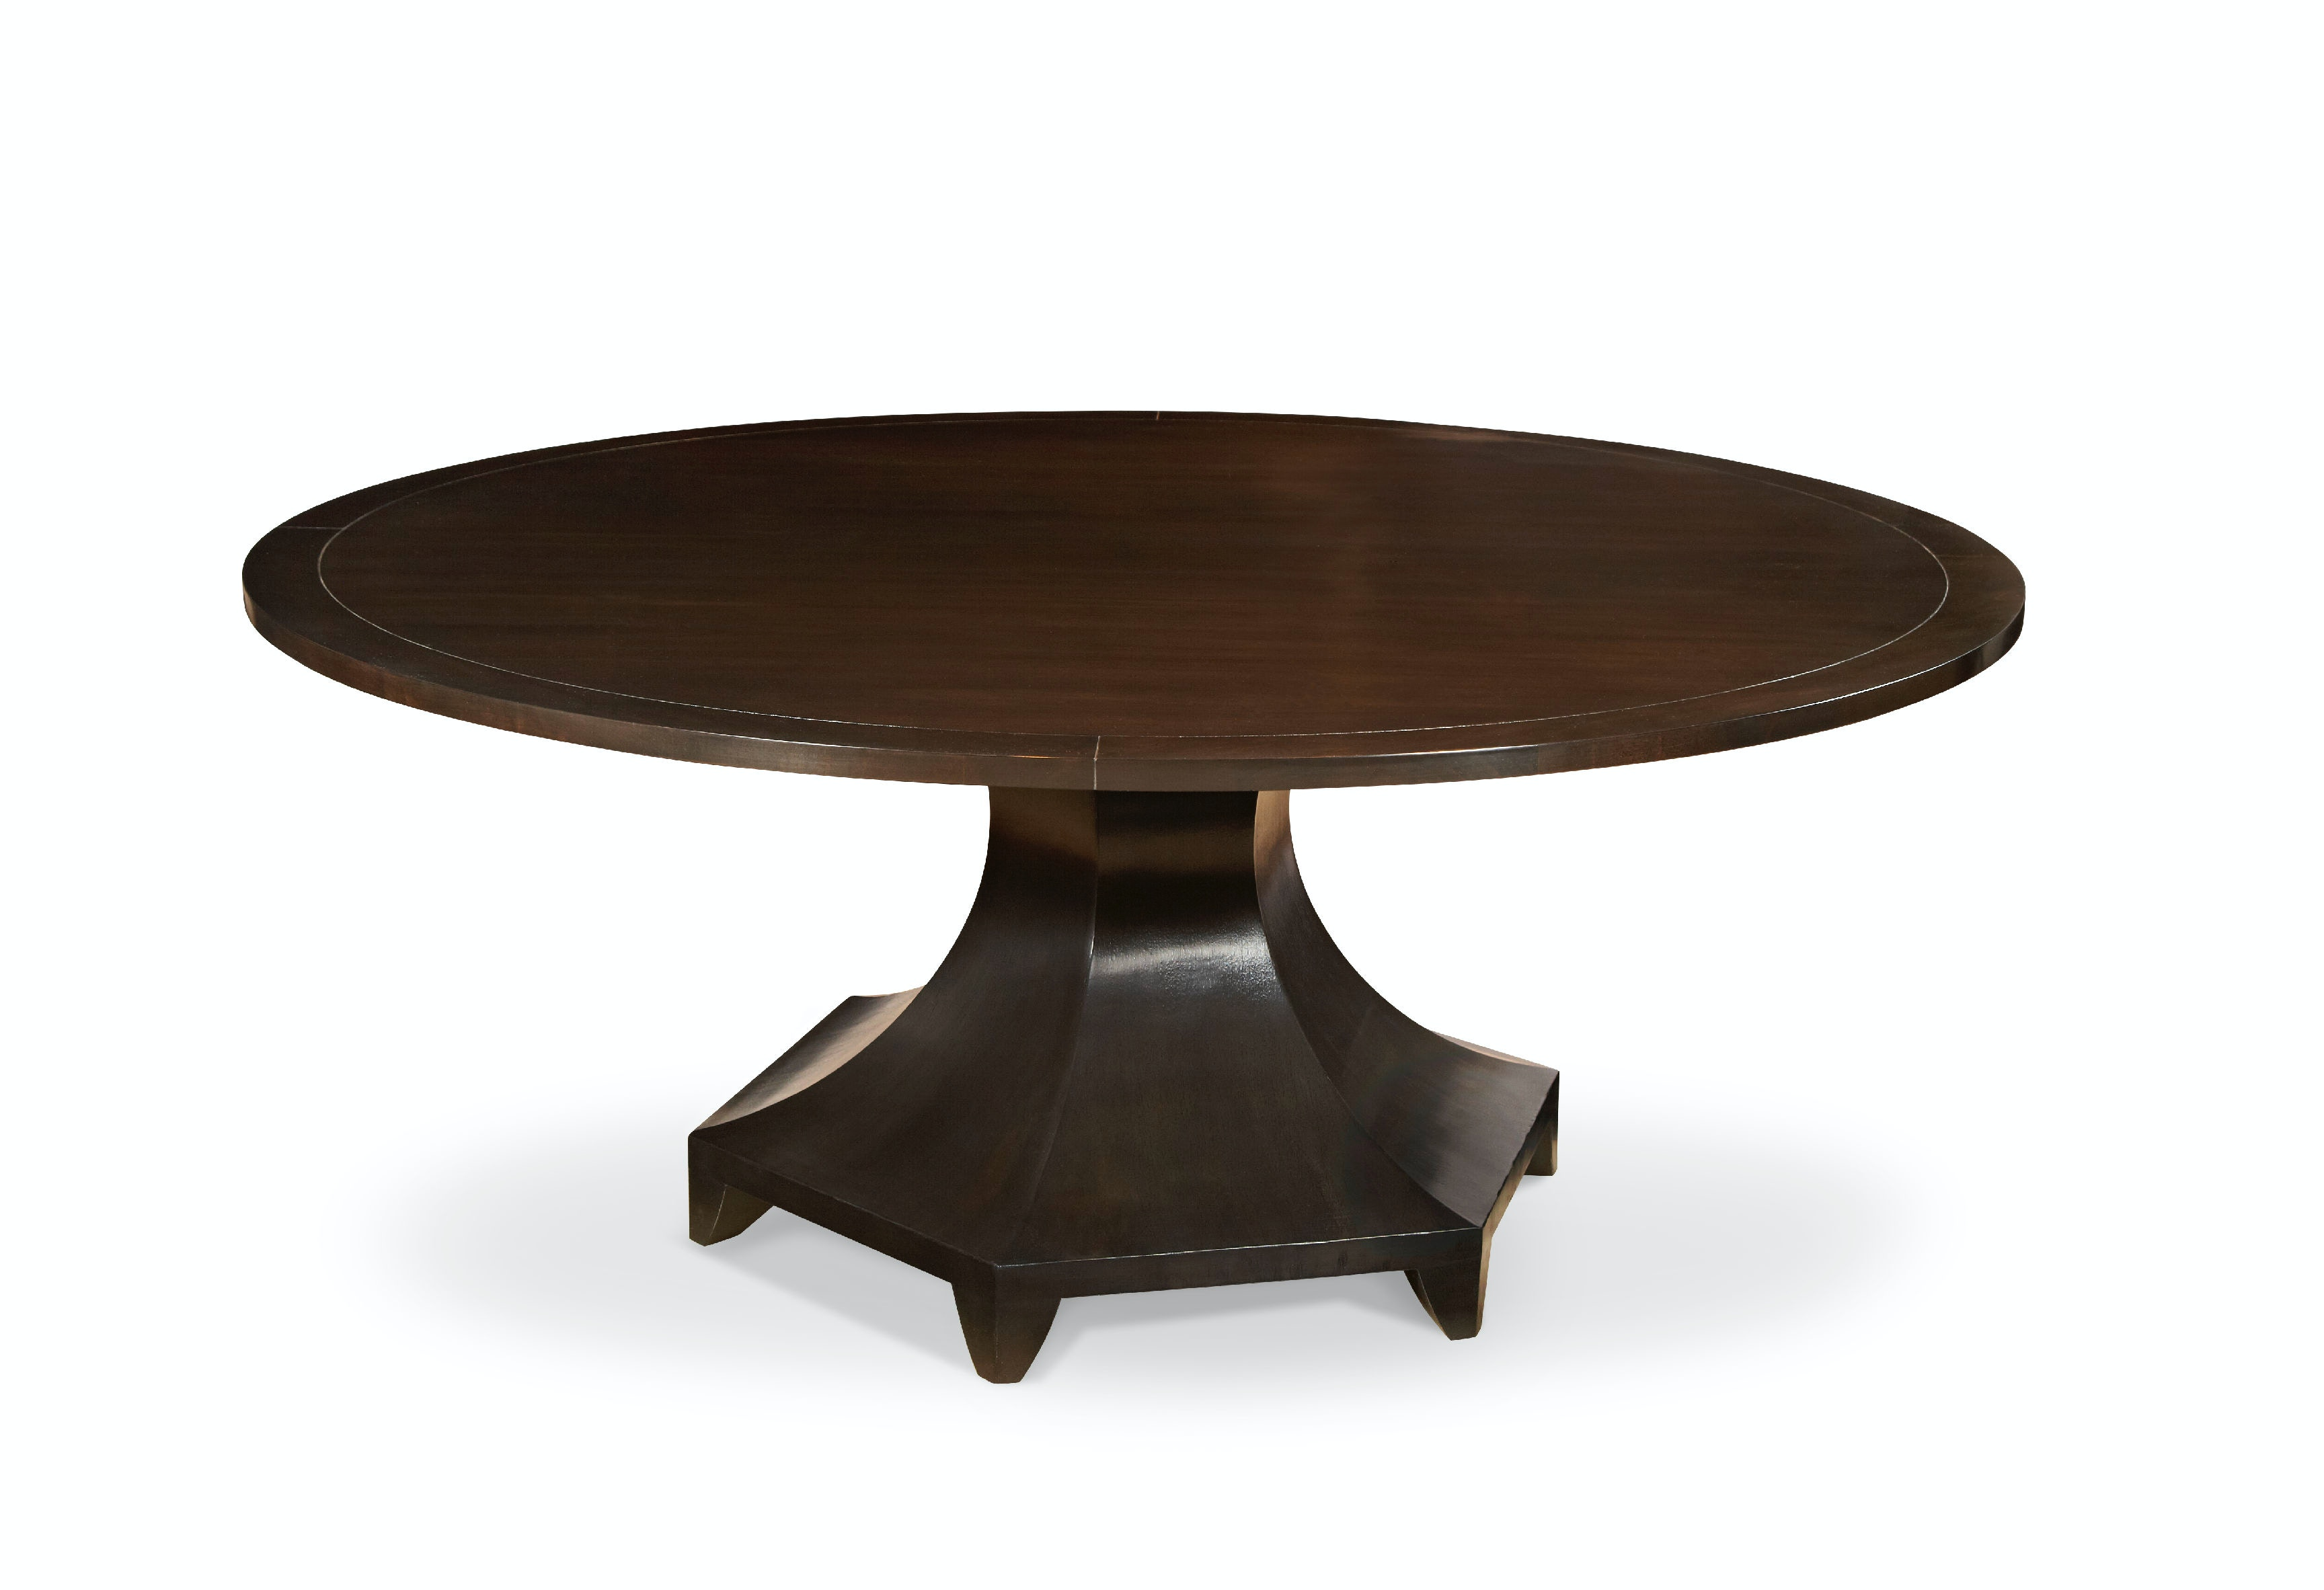 Chaddock Gala Dining Table 1486 20